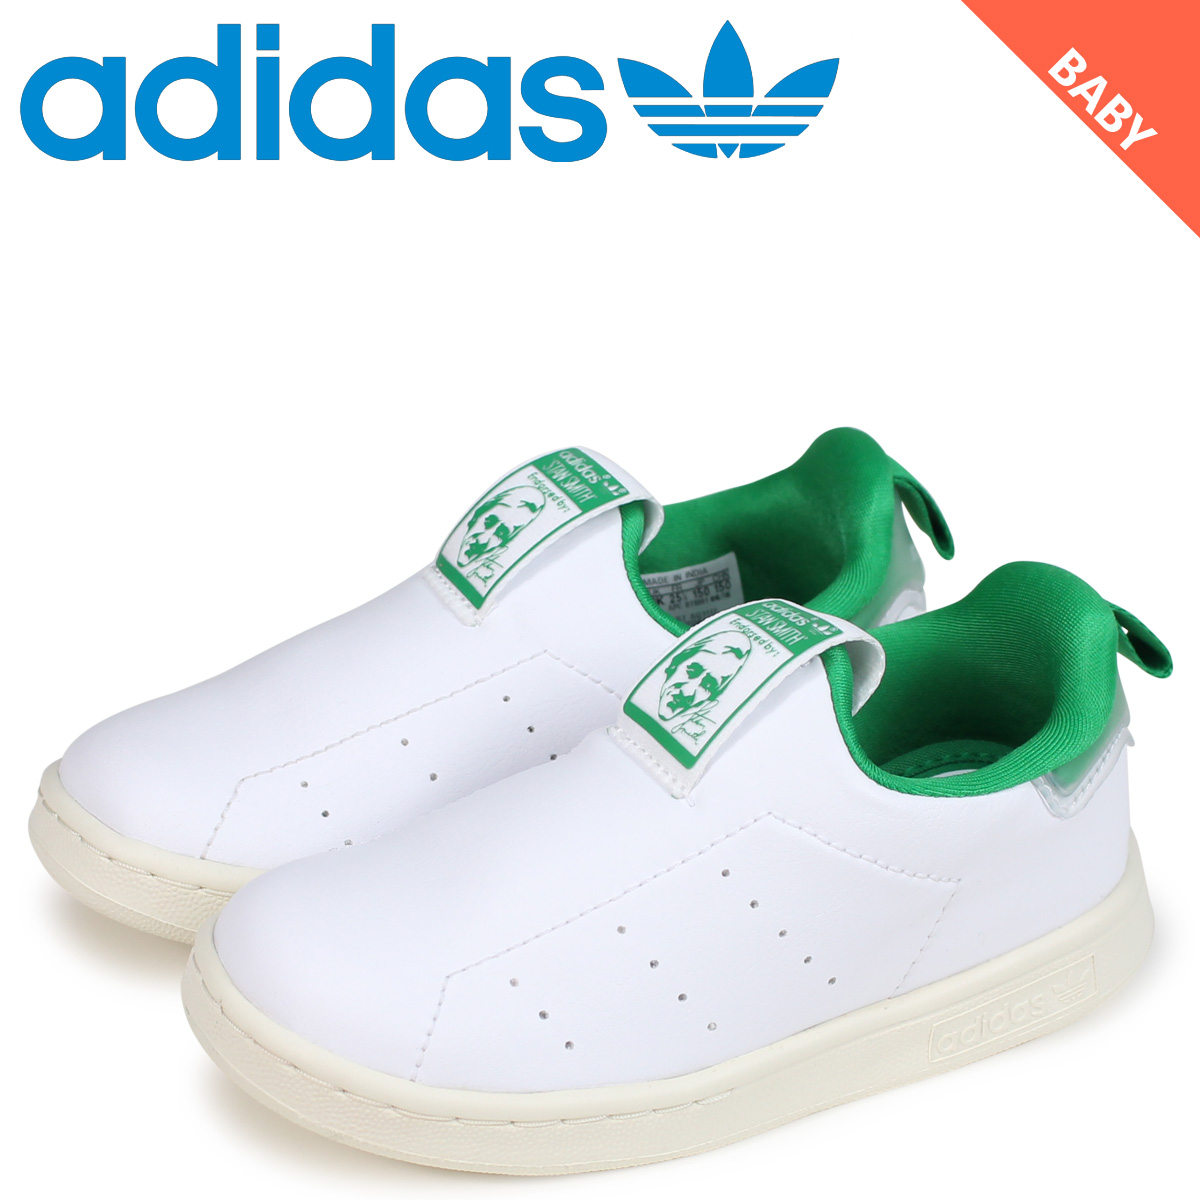 adidas Originals Stan Smith Adidas originals baby sneakers STAN SMITH 360 I AQ1112 white white